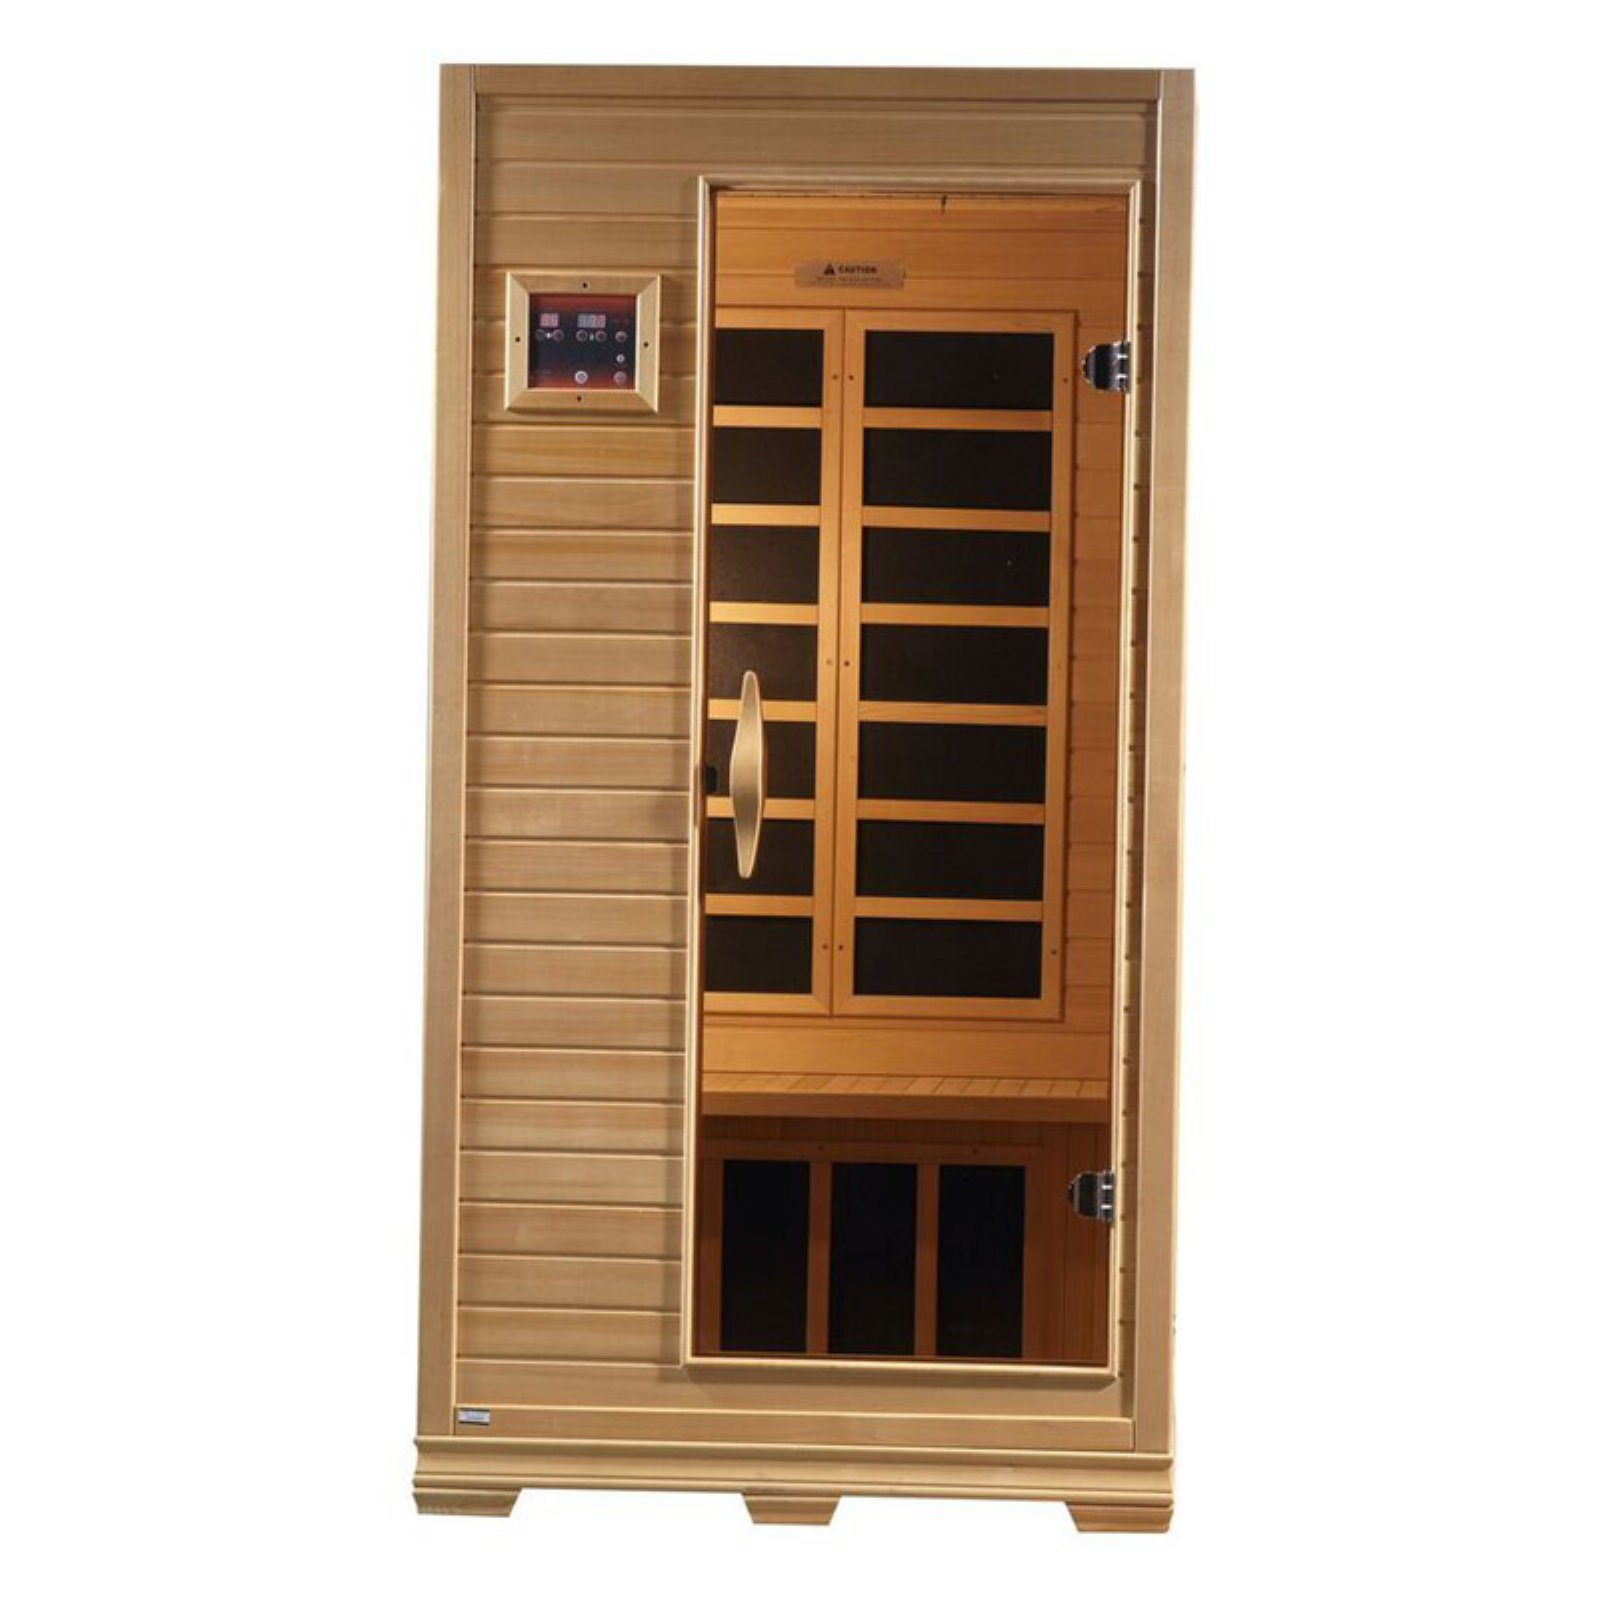 Golden Designs Inc. 1-2 Person Infrared Sauna